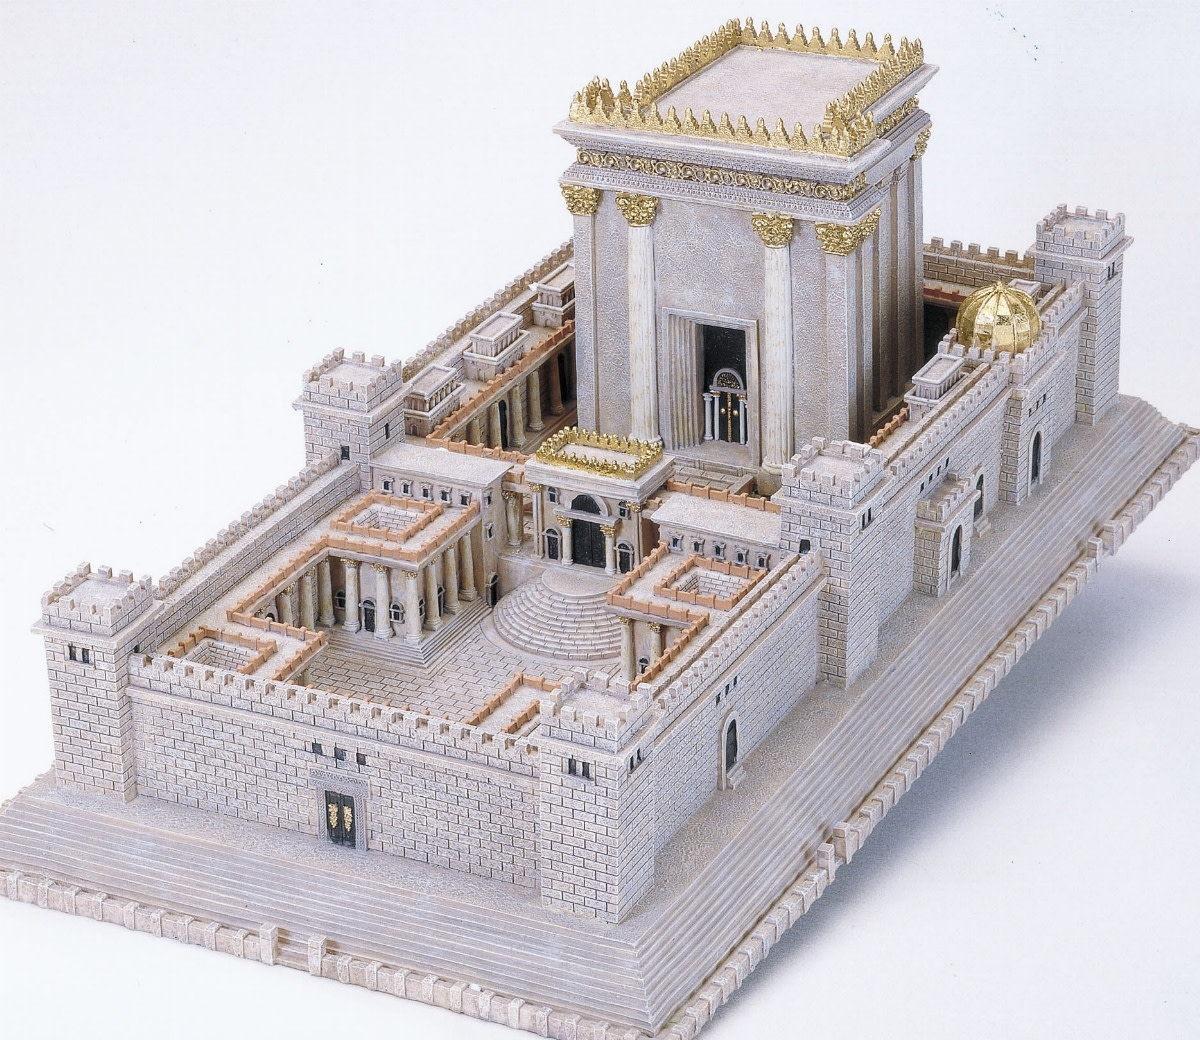 THE TEMPLE OF KING SOLOMON